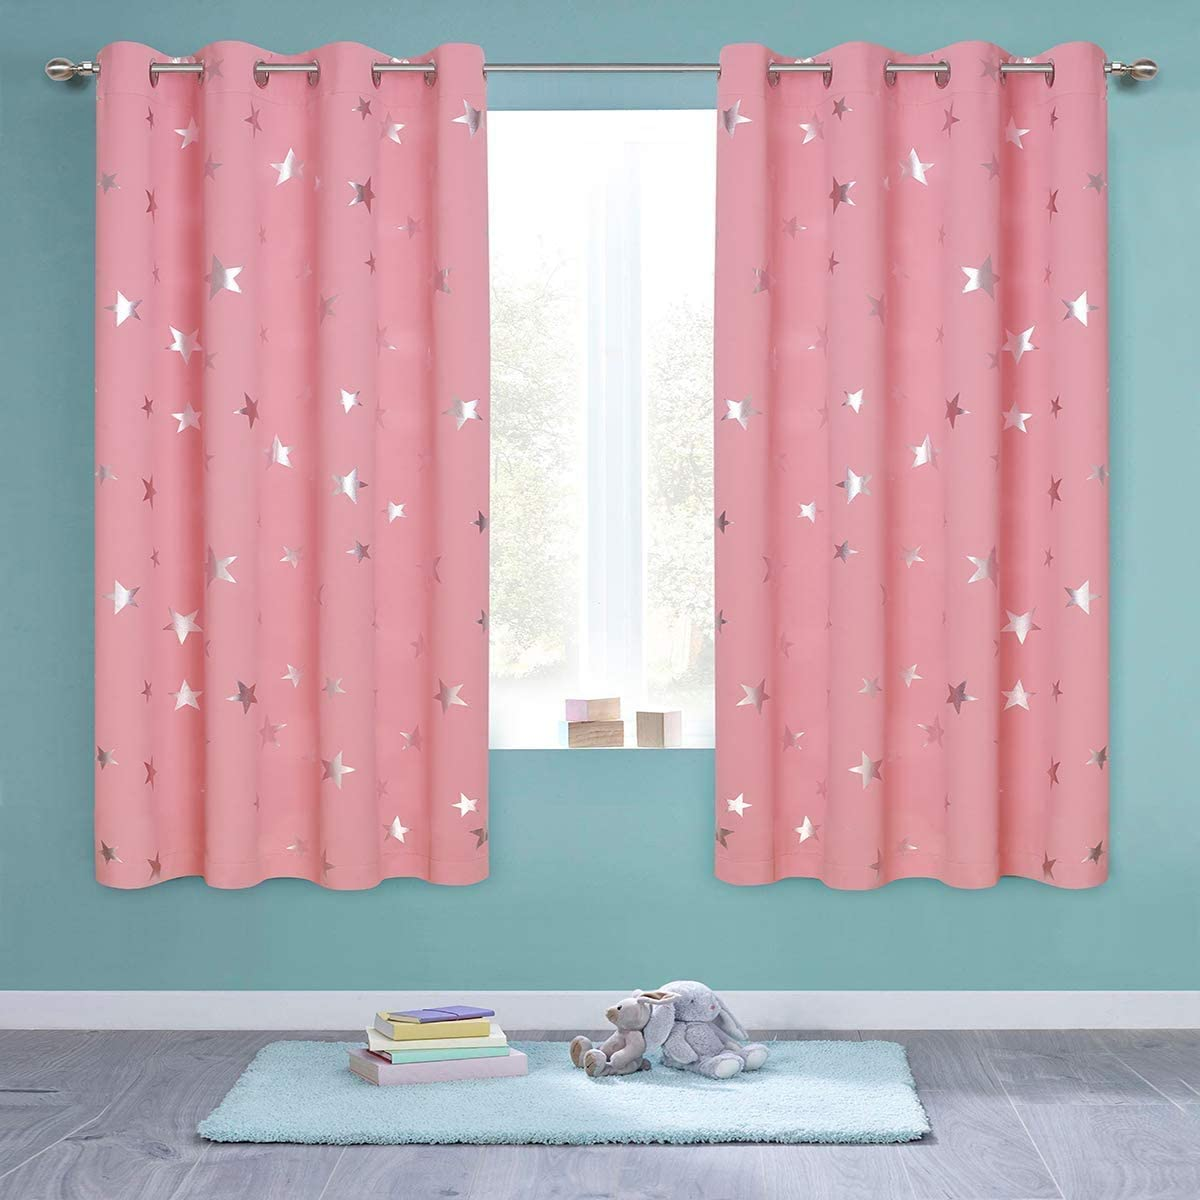 Amazon Com Anjee Blackout Curtains For Girls Bedroom 63 Inches Long Kids Star Foil Print Window Pink Curtains Thermal Insulated Room Darkening Drapes Nursery Decor 2 Panels Baby Pink 52x63 Inches Home